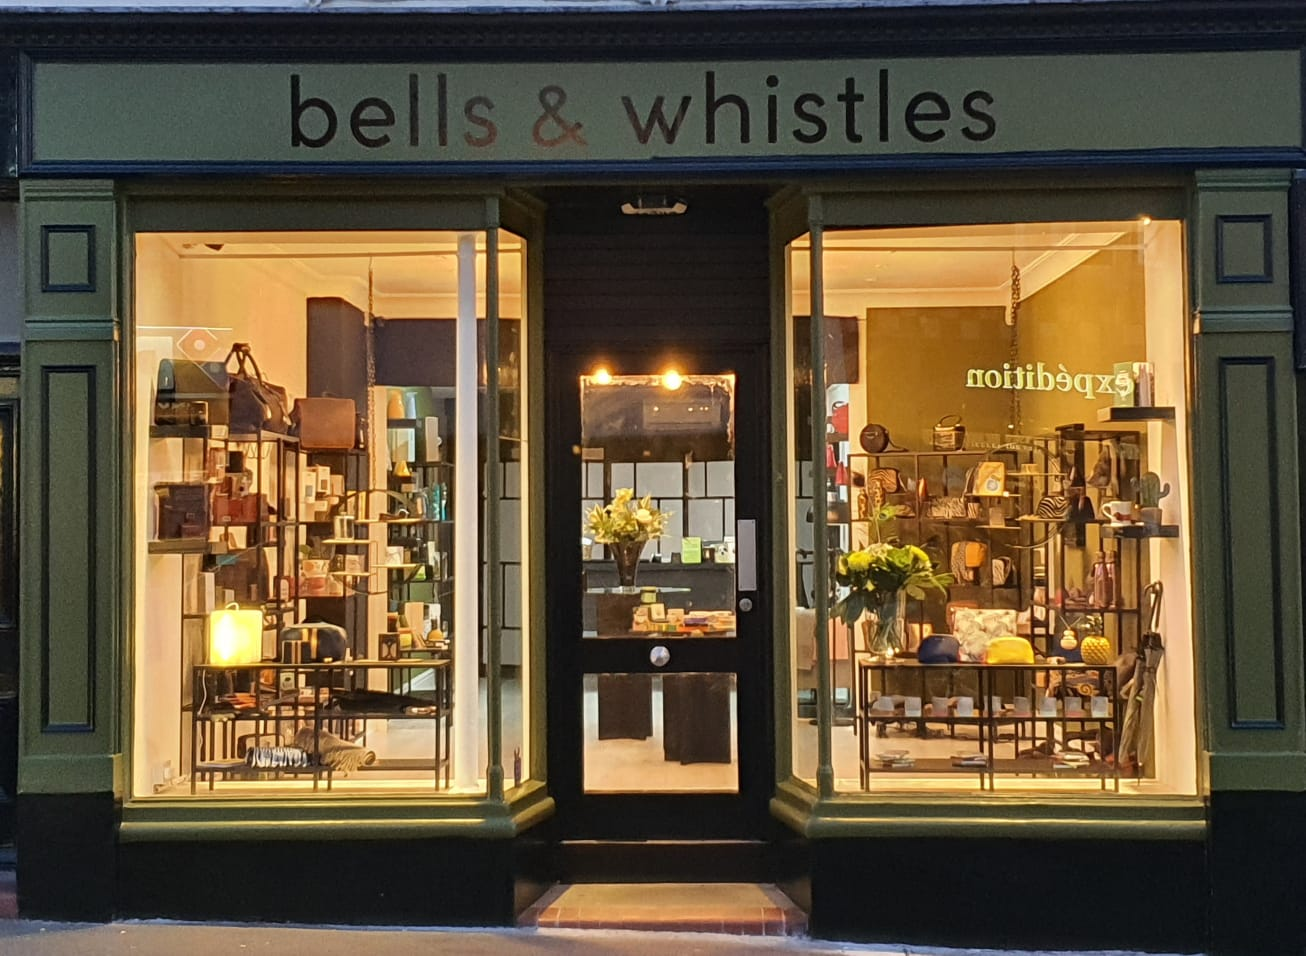 BELLS & WHISTLES (STOCKTON HEATH) LTD